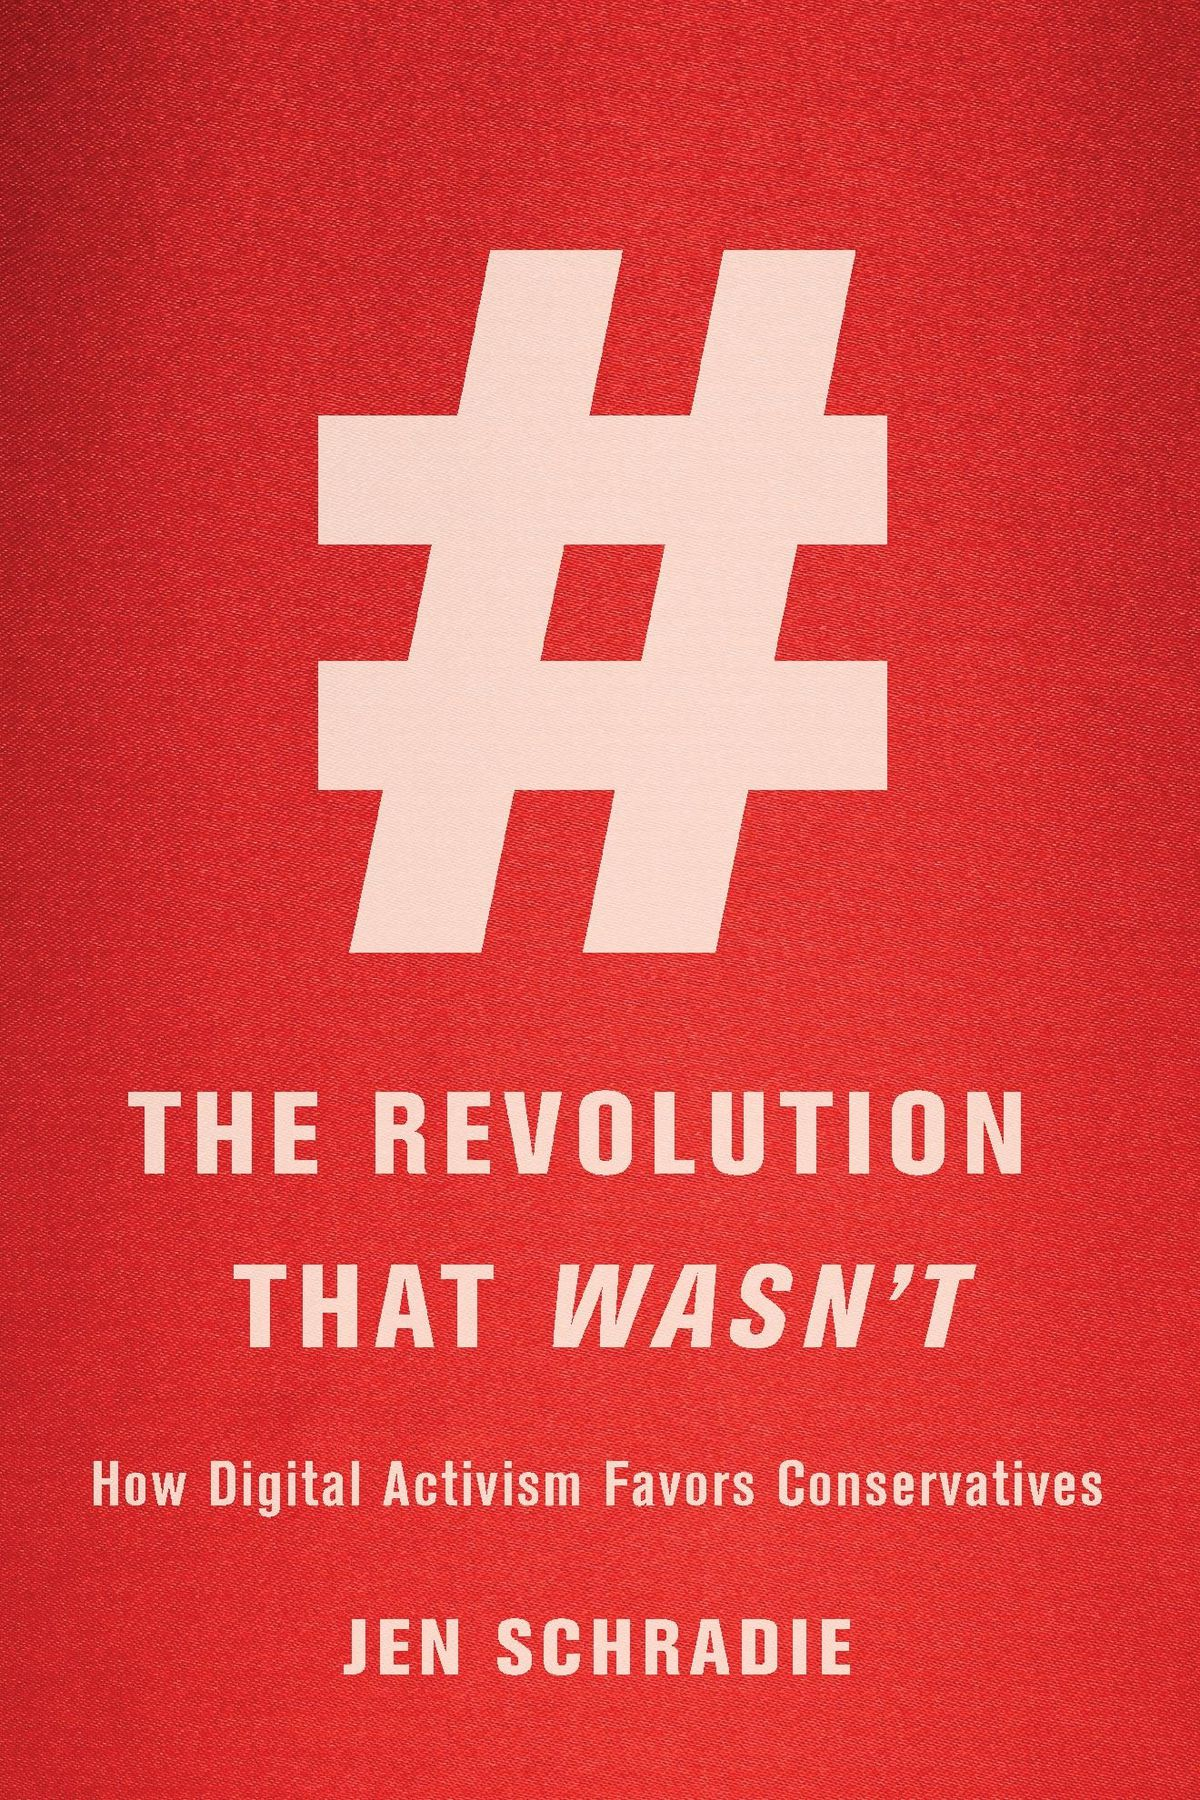 The cover of The Revolution That Wasn't.